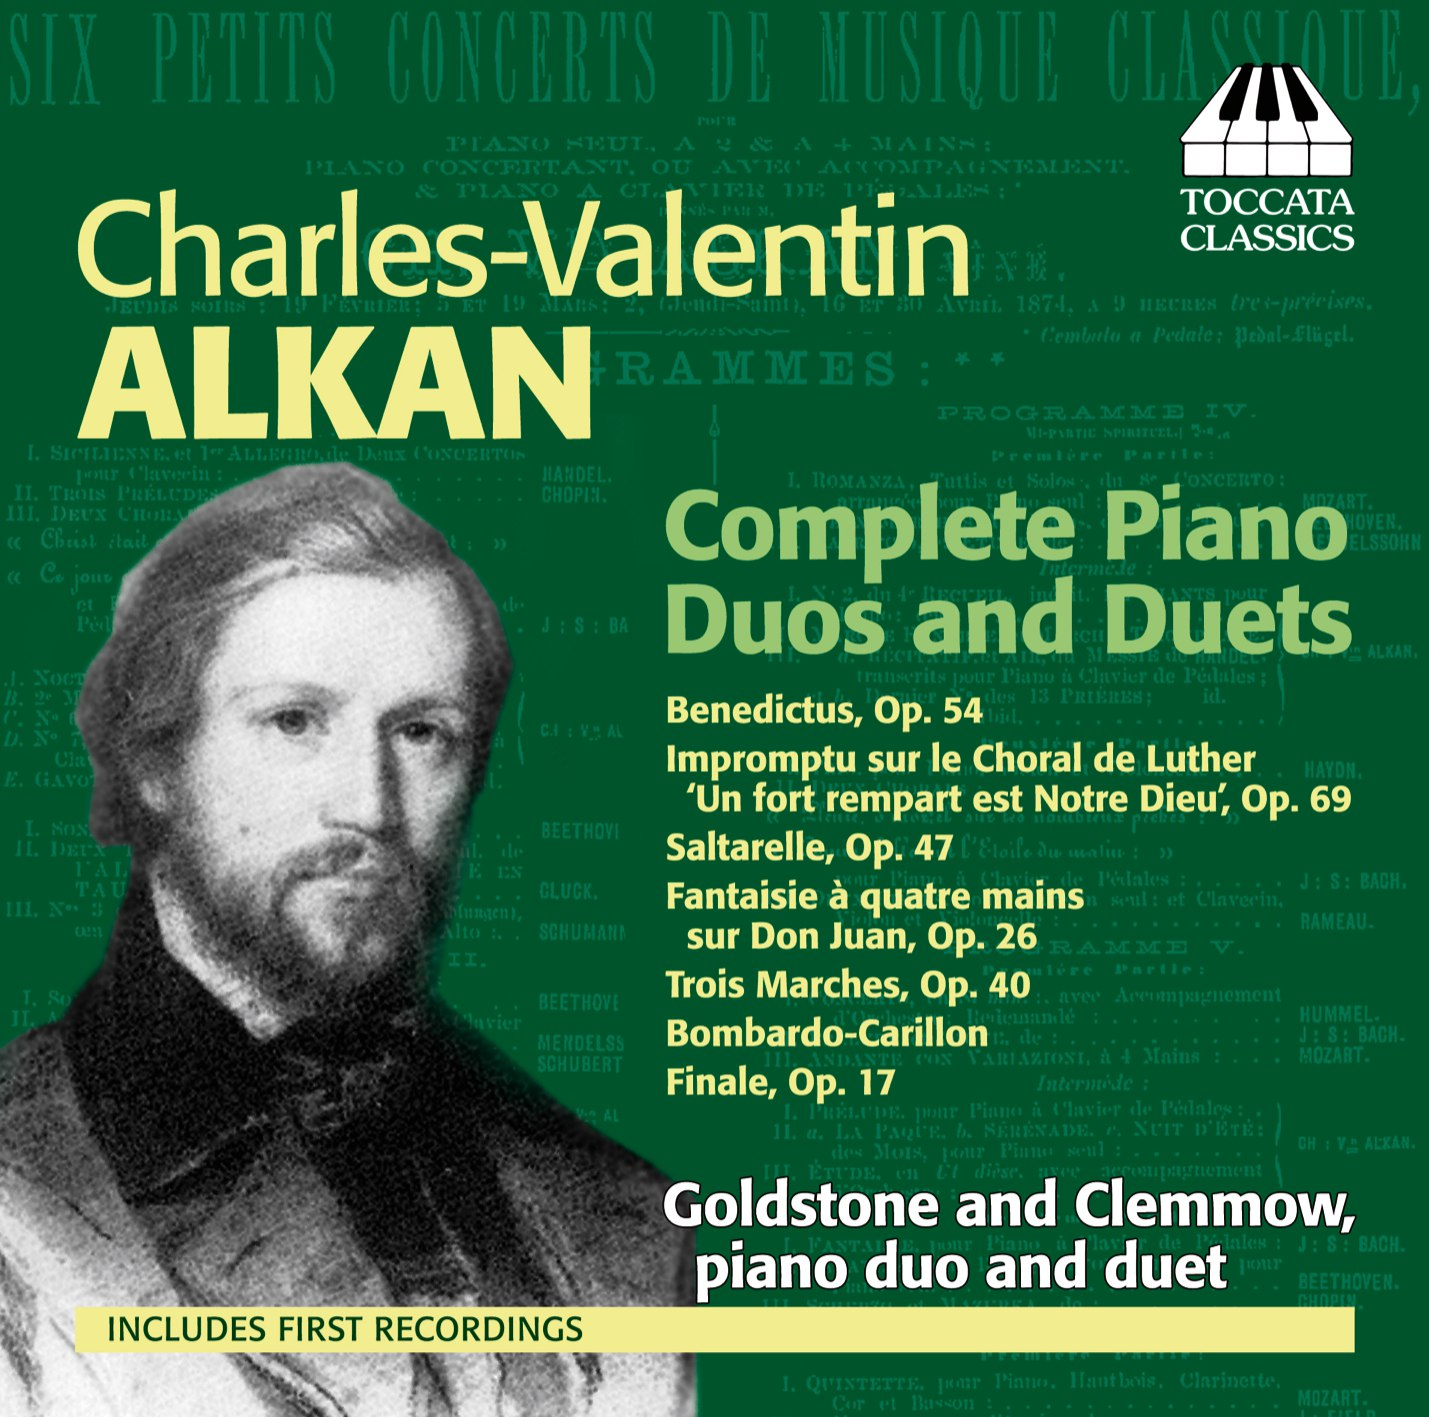 Schön Charles Valentin Alkan: Complete Piano Duos And Duets | Recordings |  Toccata Classics | Toccata Press